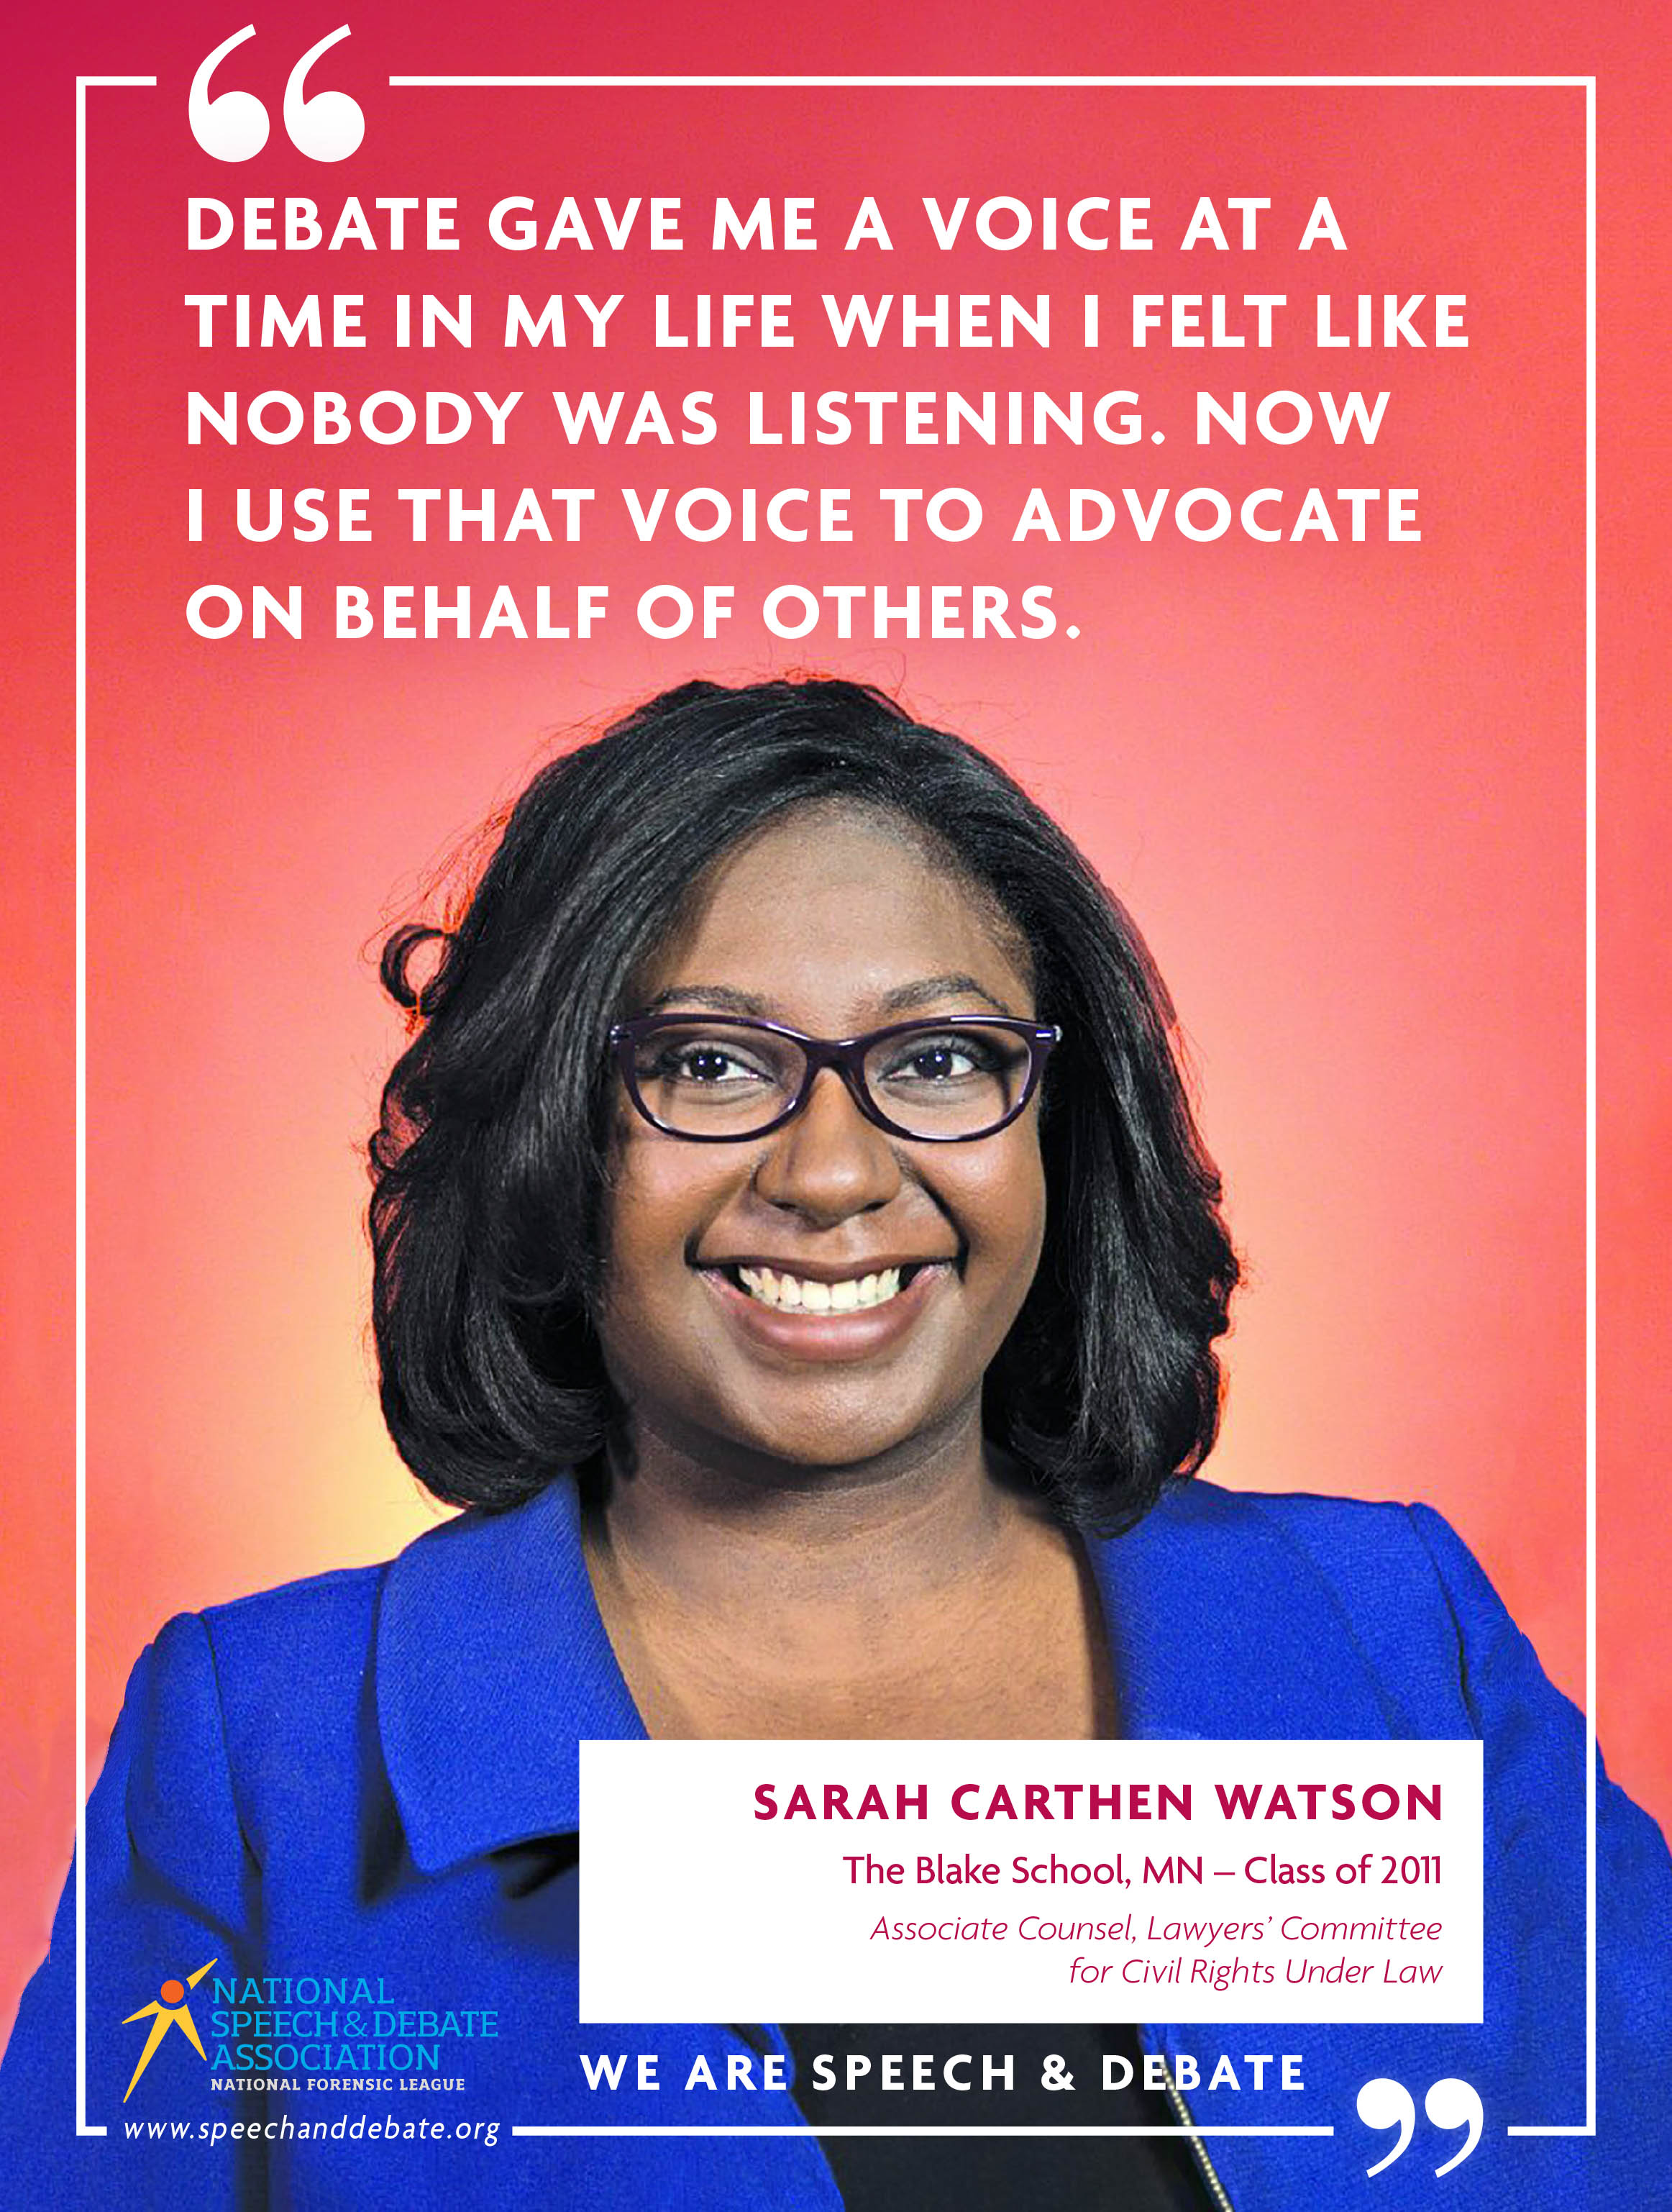 """DEBATE GAVE ME A VOICE AT A TIME IN MY LIFE WHEN I FELT LIKE NOBODY WAS LISTENING. NOW I USE THAT VOICE TO ADVOCATE ON BEHALF OF OTHERS."" - Sarah Carthen Watson"